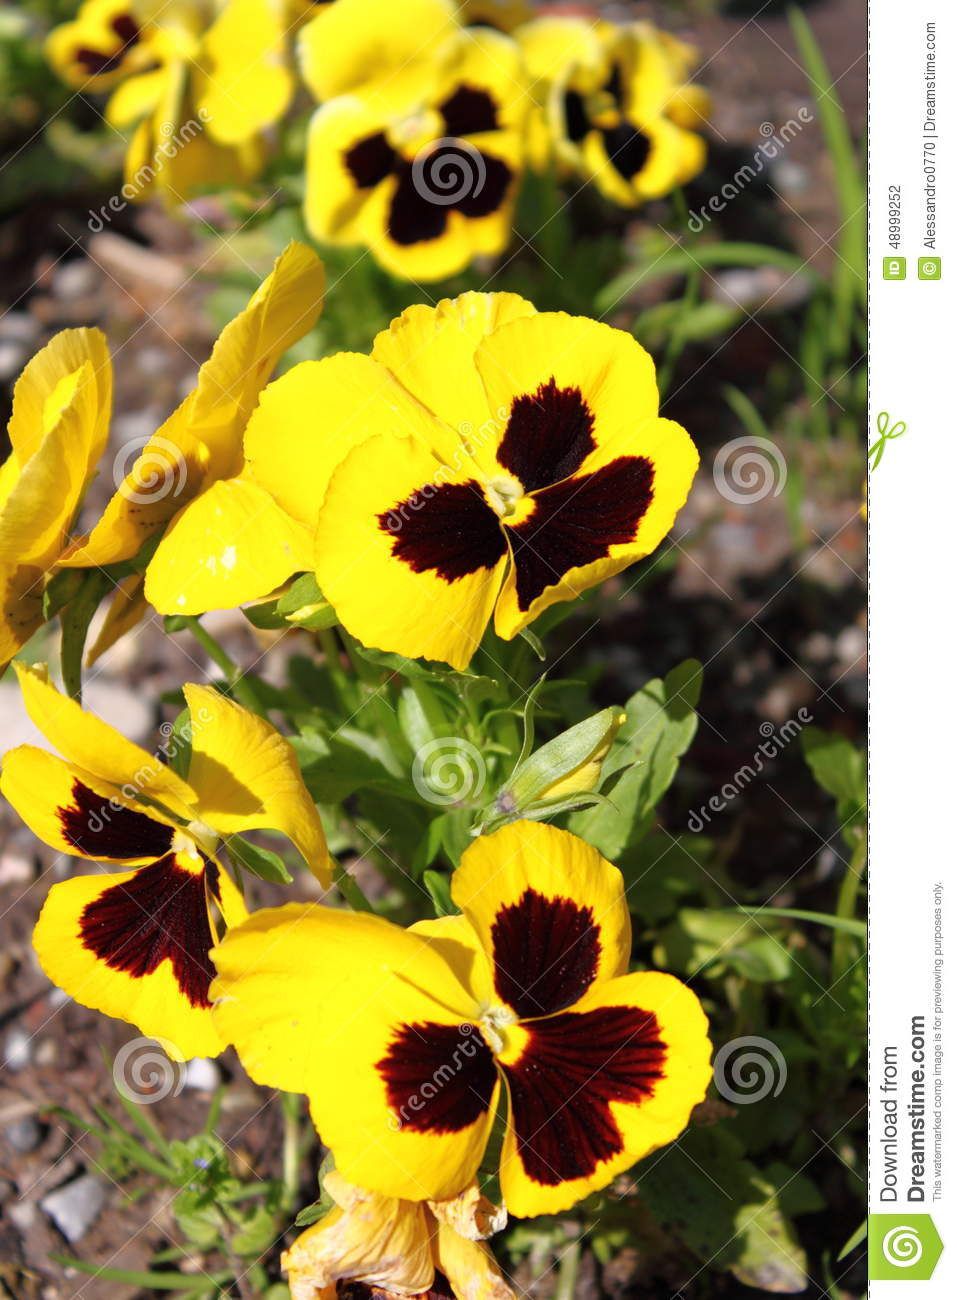 Yellow Pansy Flowers Stock Photo Image Of Floral Pansy 48999252